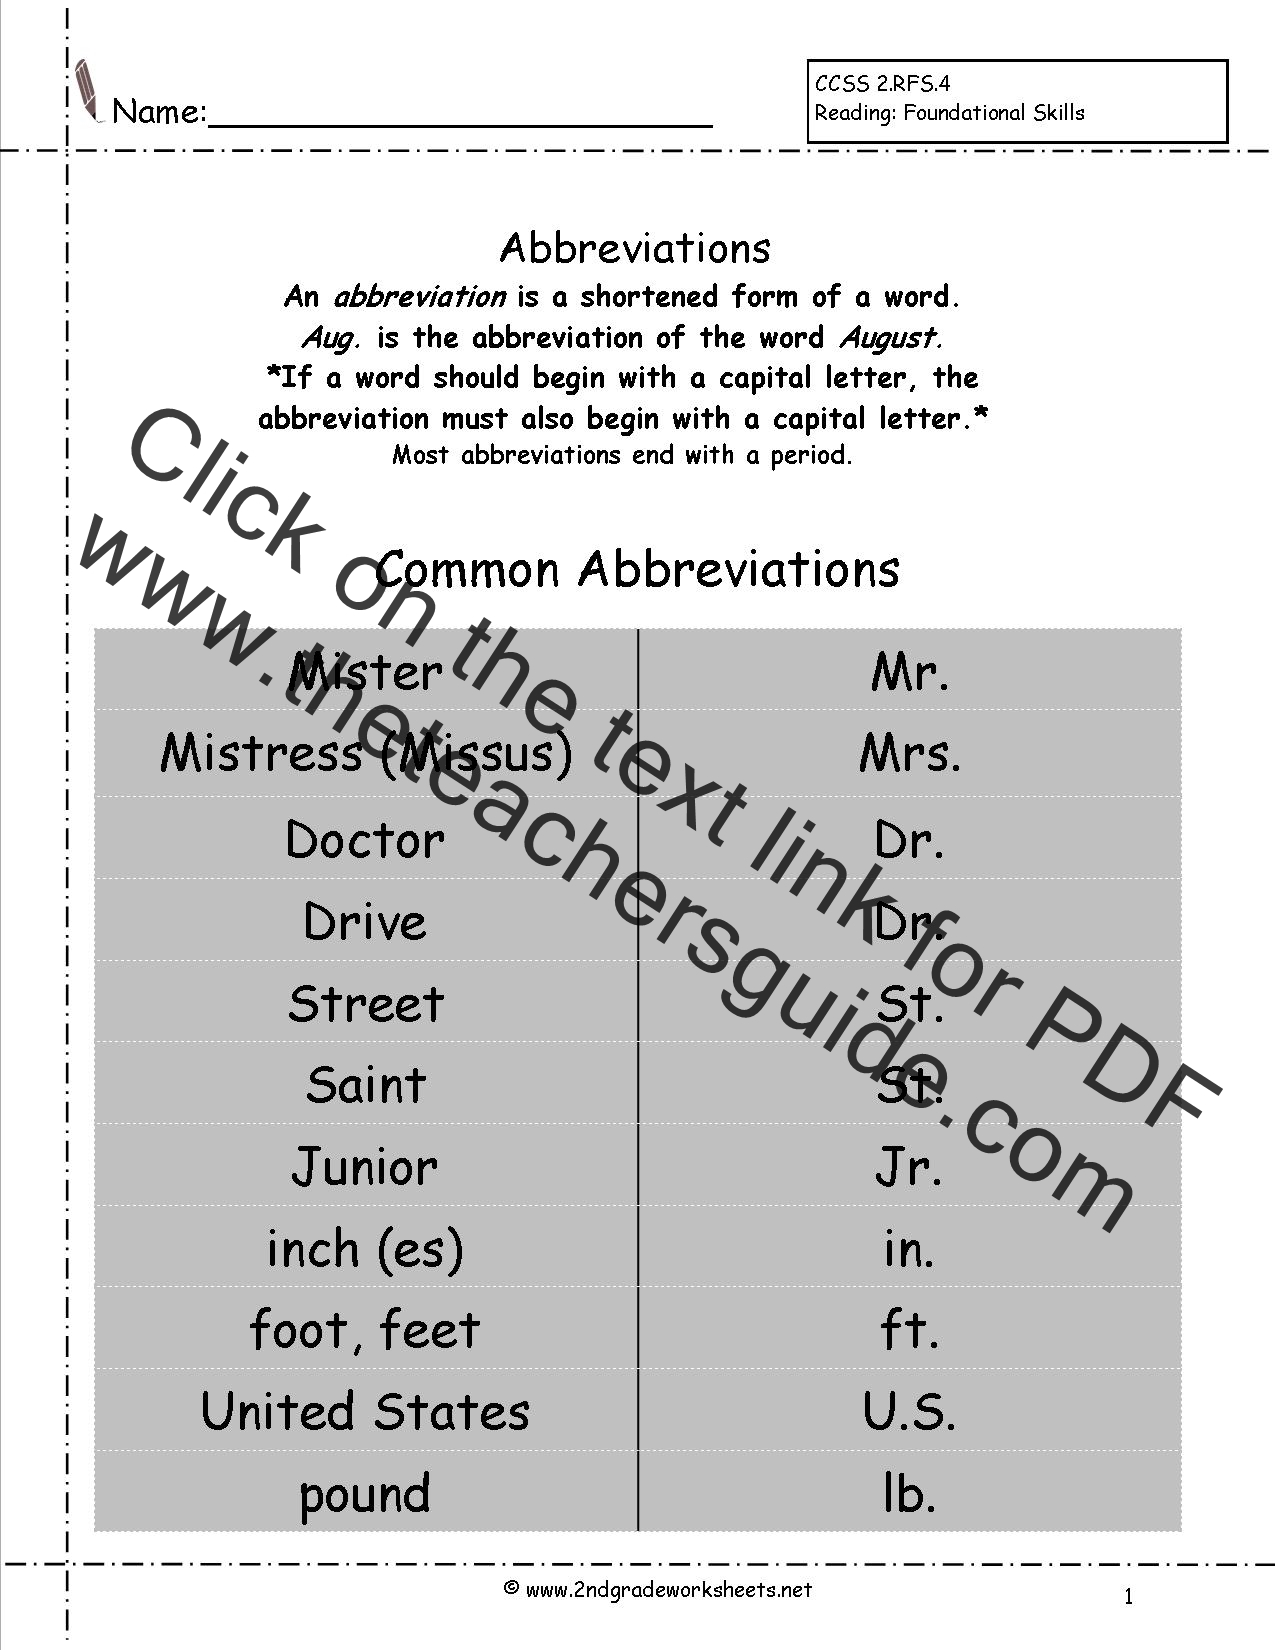 Free Language Grammar Worksheets And Printouts